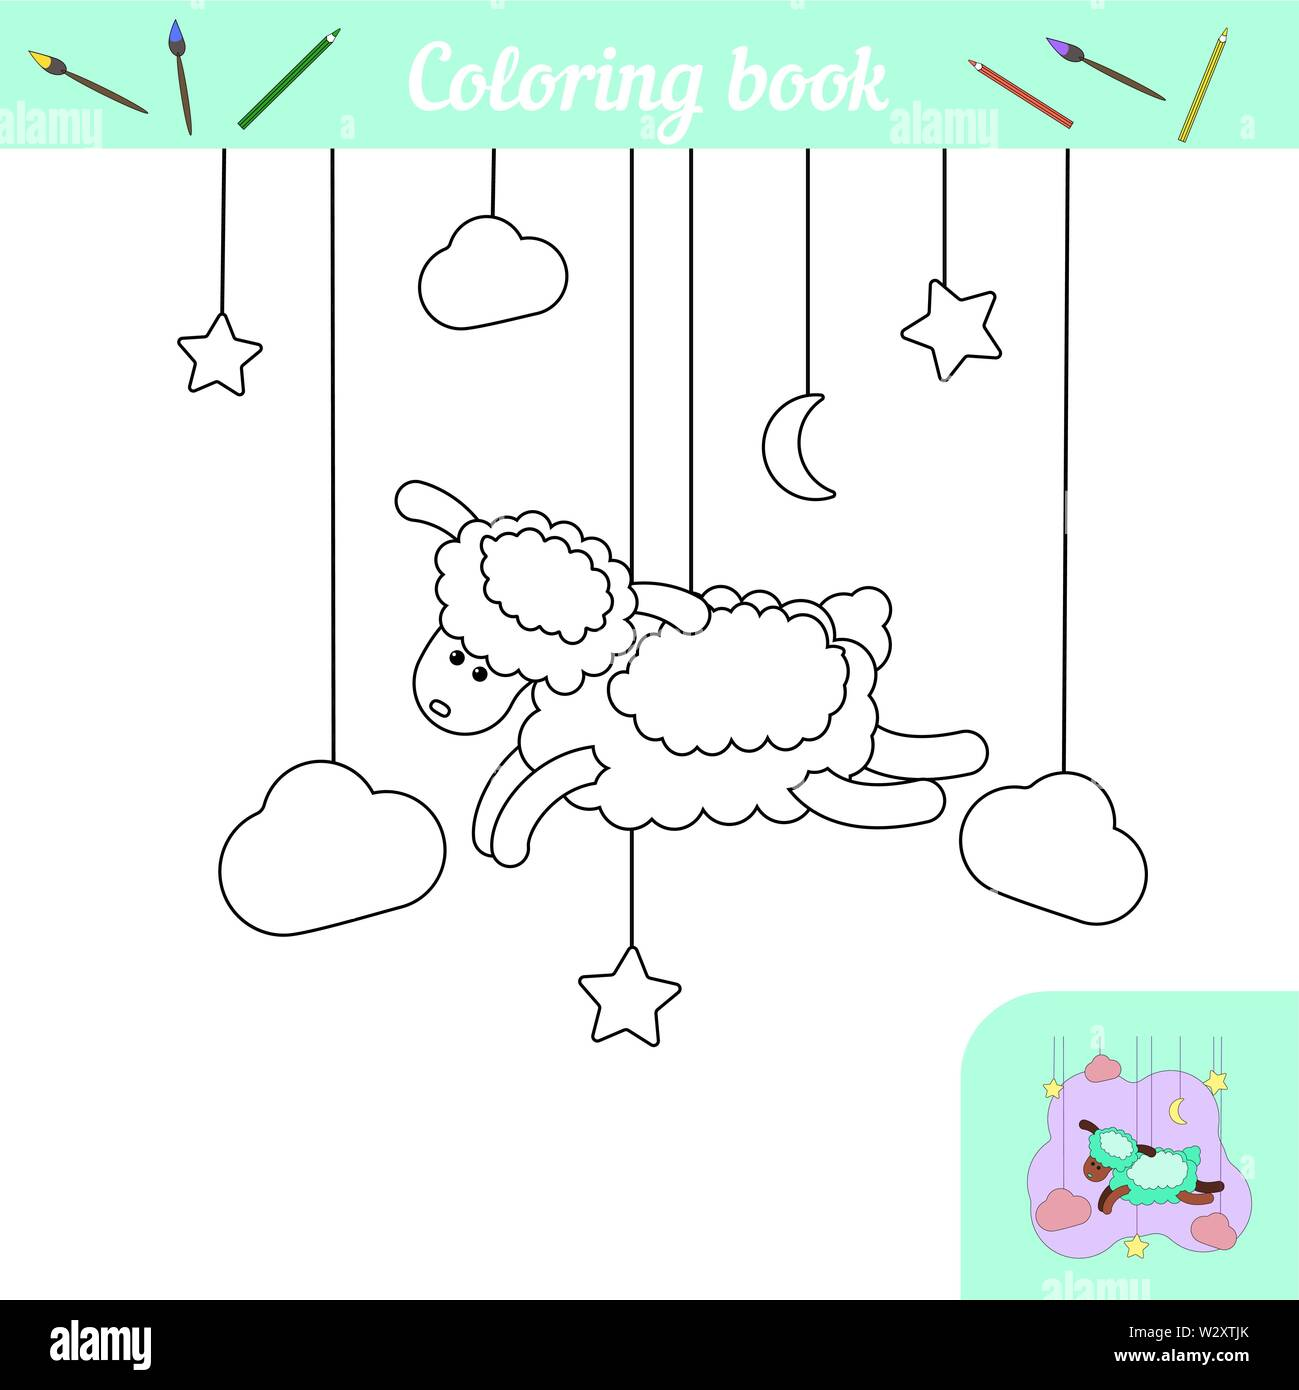 Cute lamb and stars. Coloring page with color example. A simple coloring game for preschoolers. Cartoon character farm animal sheep. Poster for printing. Black and white silhouette. Educational card. Vector illustration Moon, cloud, night - Stock Image